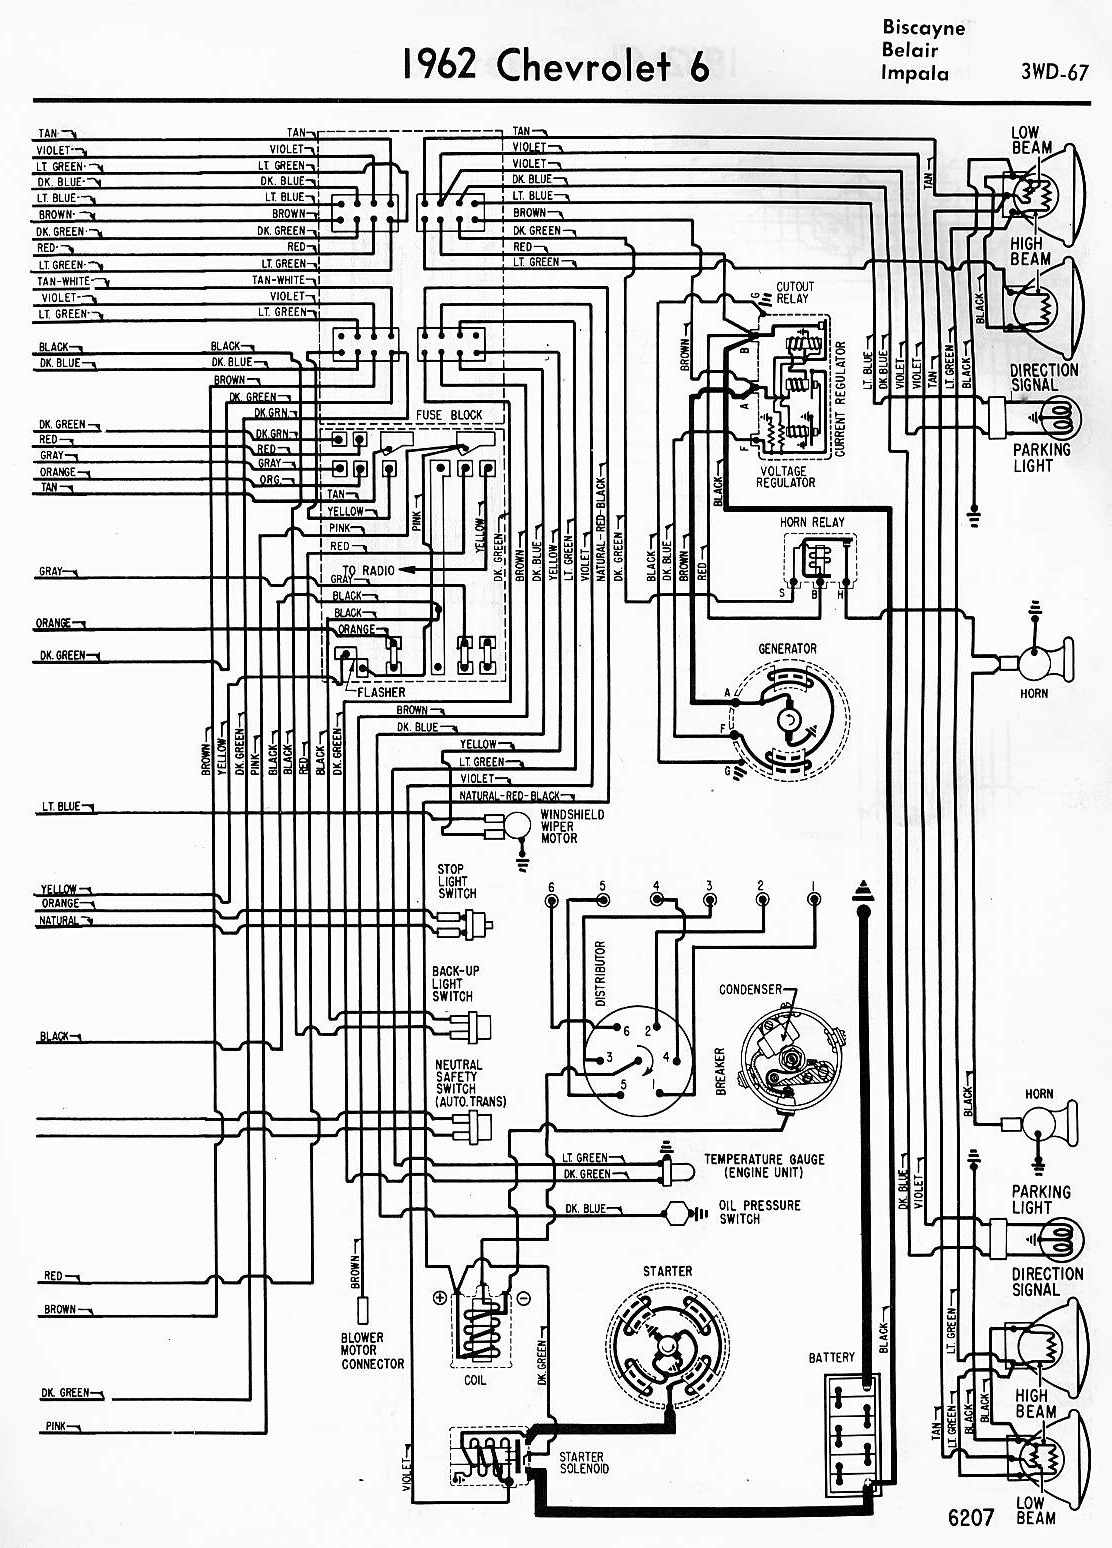 Electrical+Wiring+Diagram+Of+1964+Chevrolet+6 2011 impala wiring diagram 2005 impala ignition wiring diagram 64 Chevy Impala Wiring Diagram at webbmarketing.co